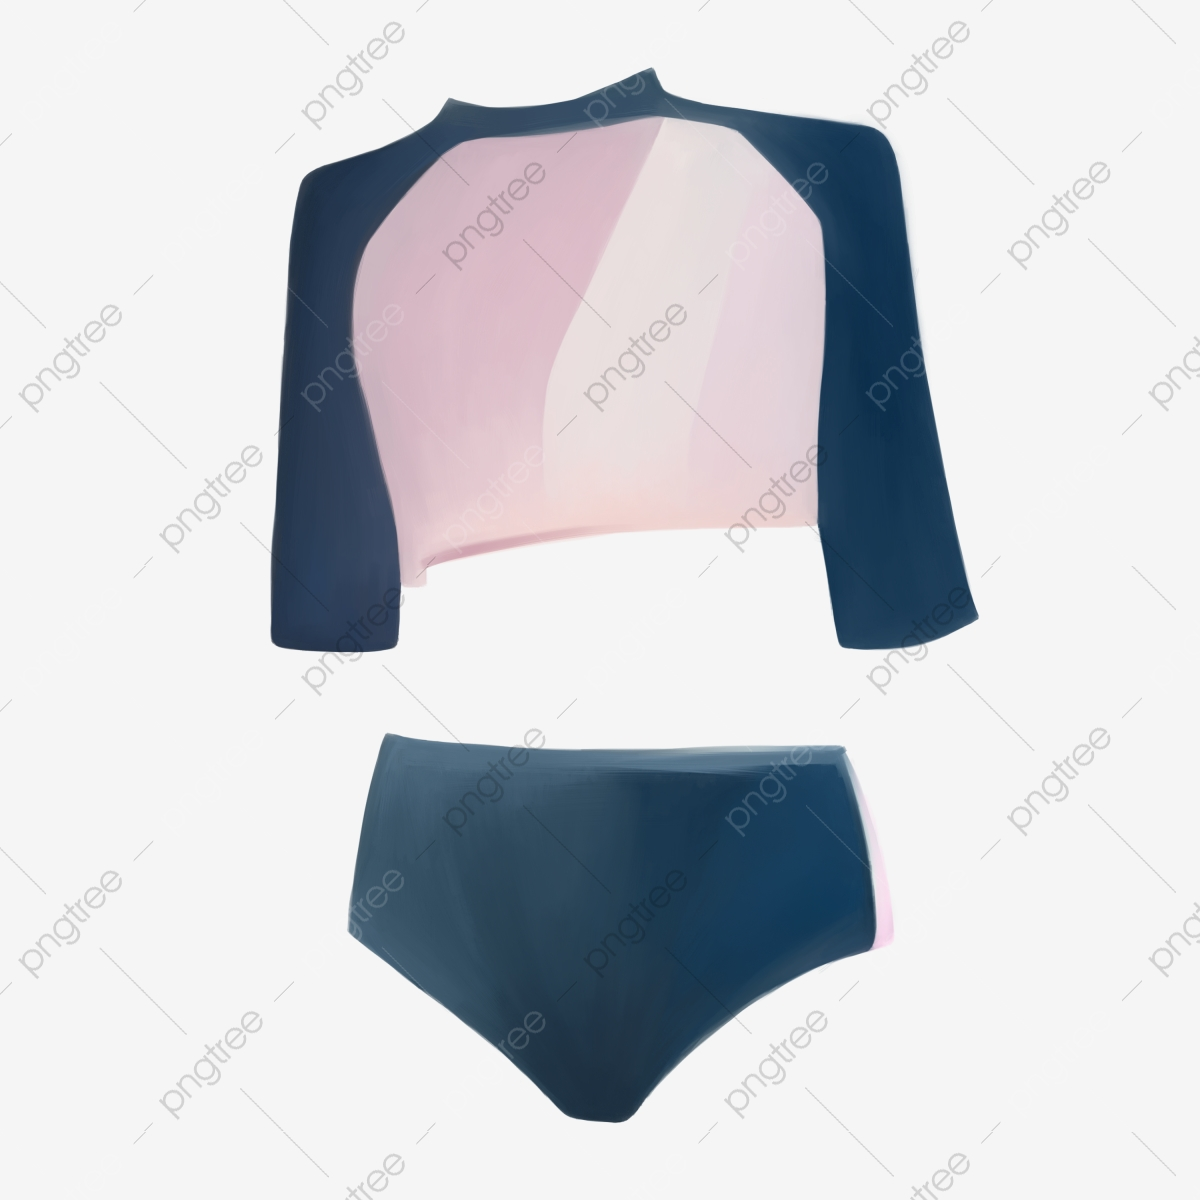 Conservative Swimsuit Illustration Black Swimsuit Swimming Png Transparent Clipart Image And Psd File For Free Download